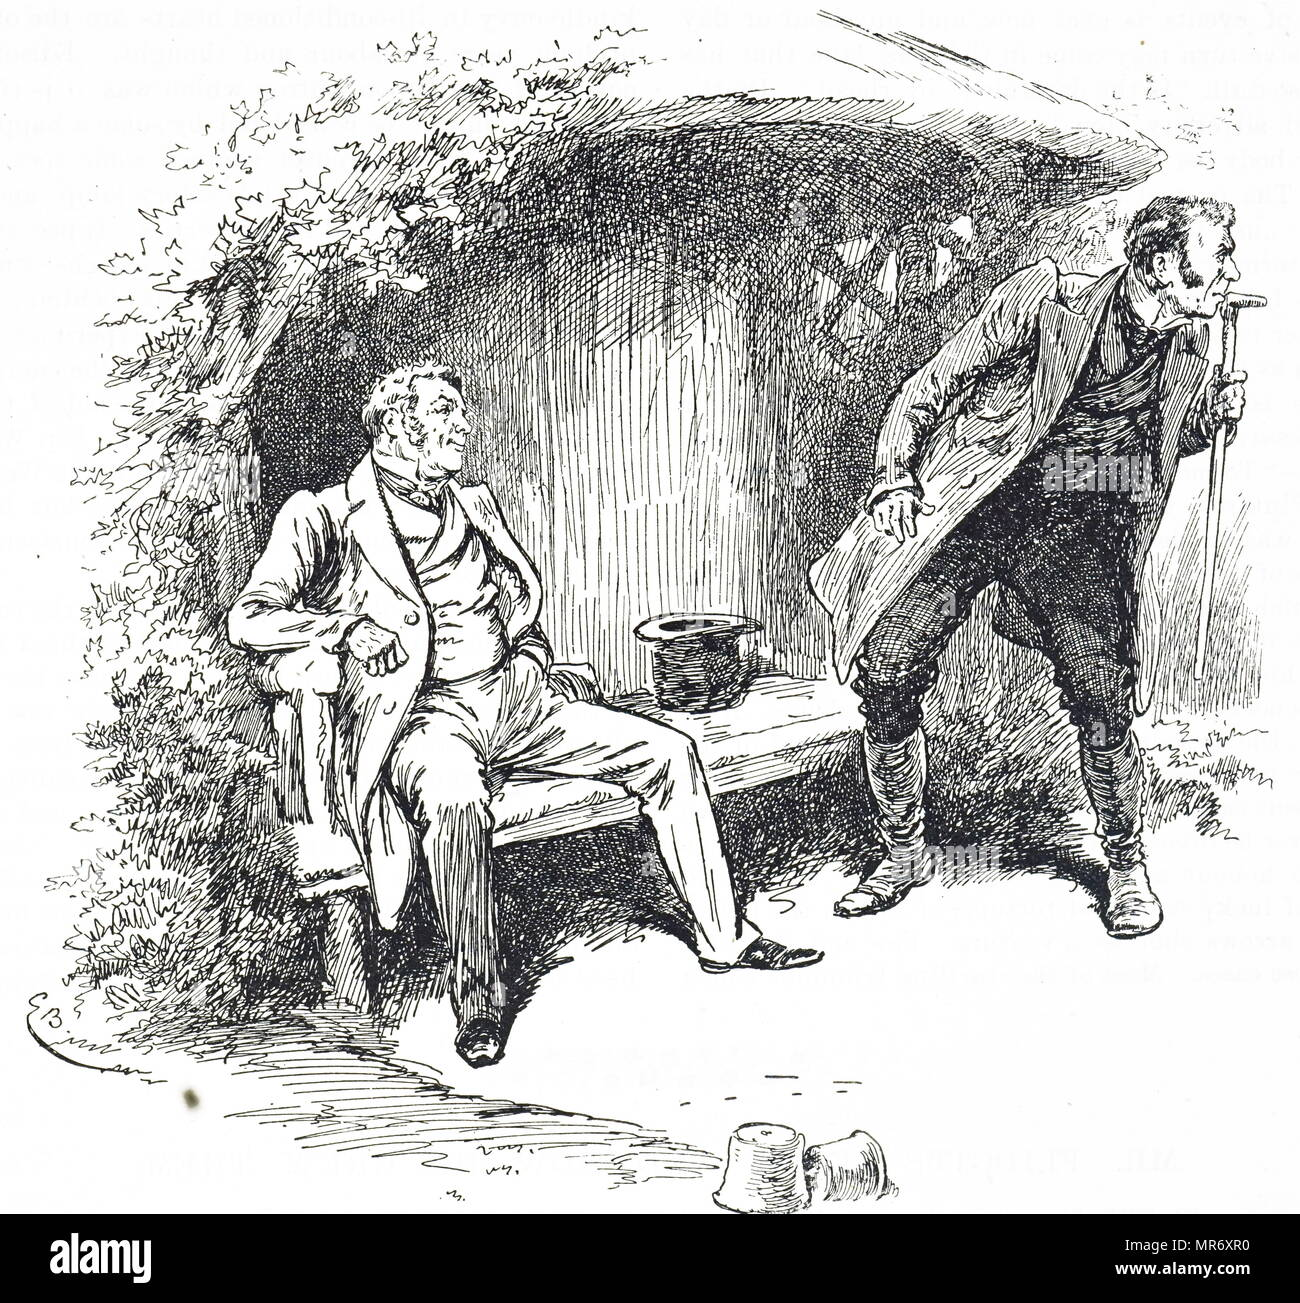 Engraving depicting two gentlemen enjoying a summer's day in the shade of the summer house. Dated 19th century - Stock Image